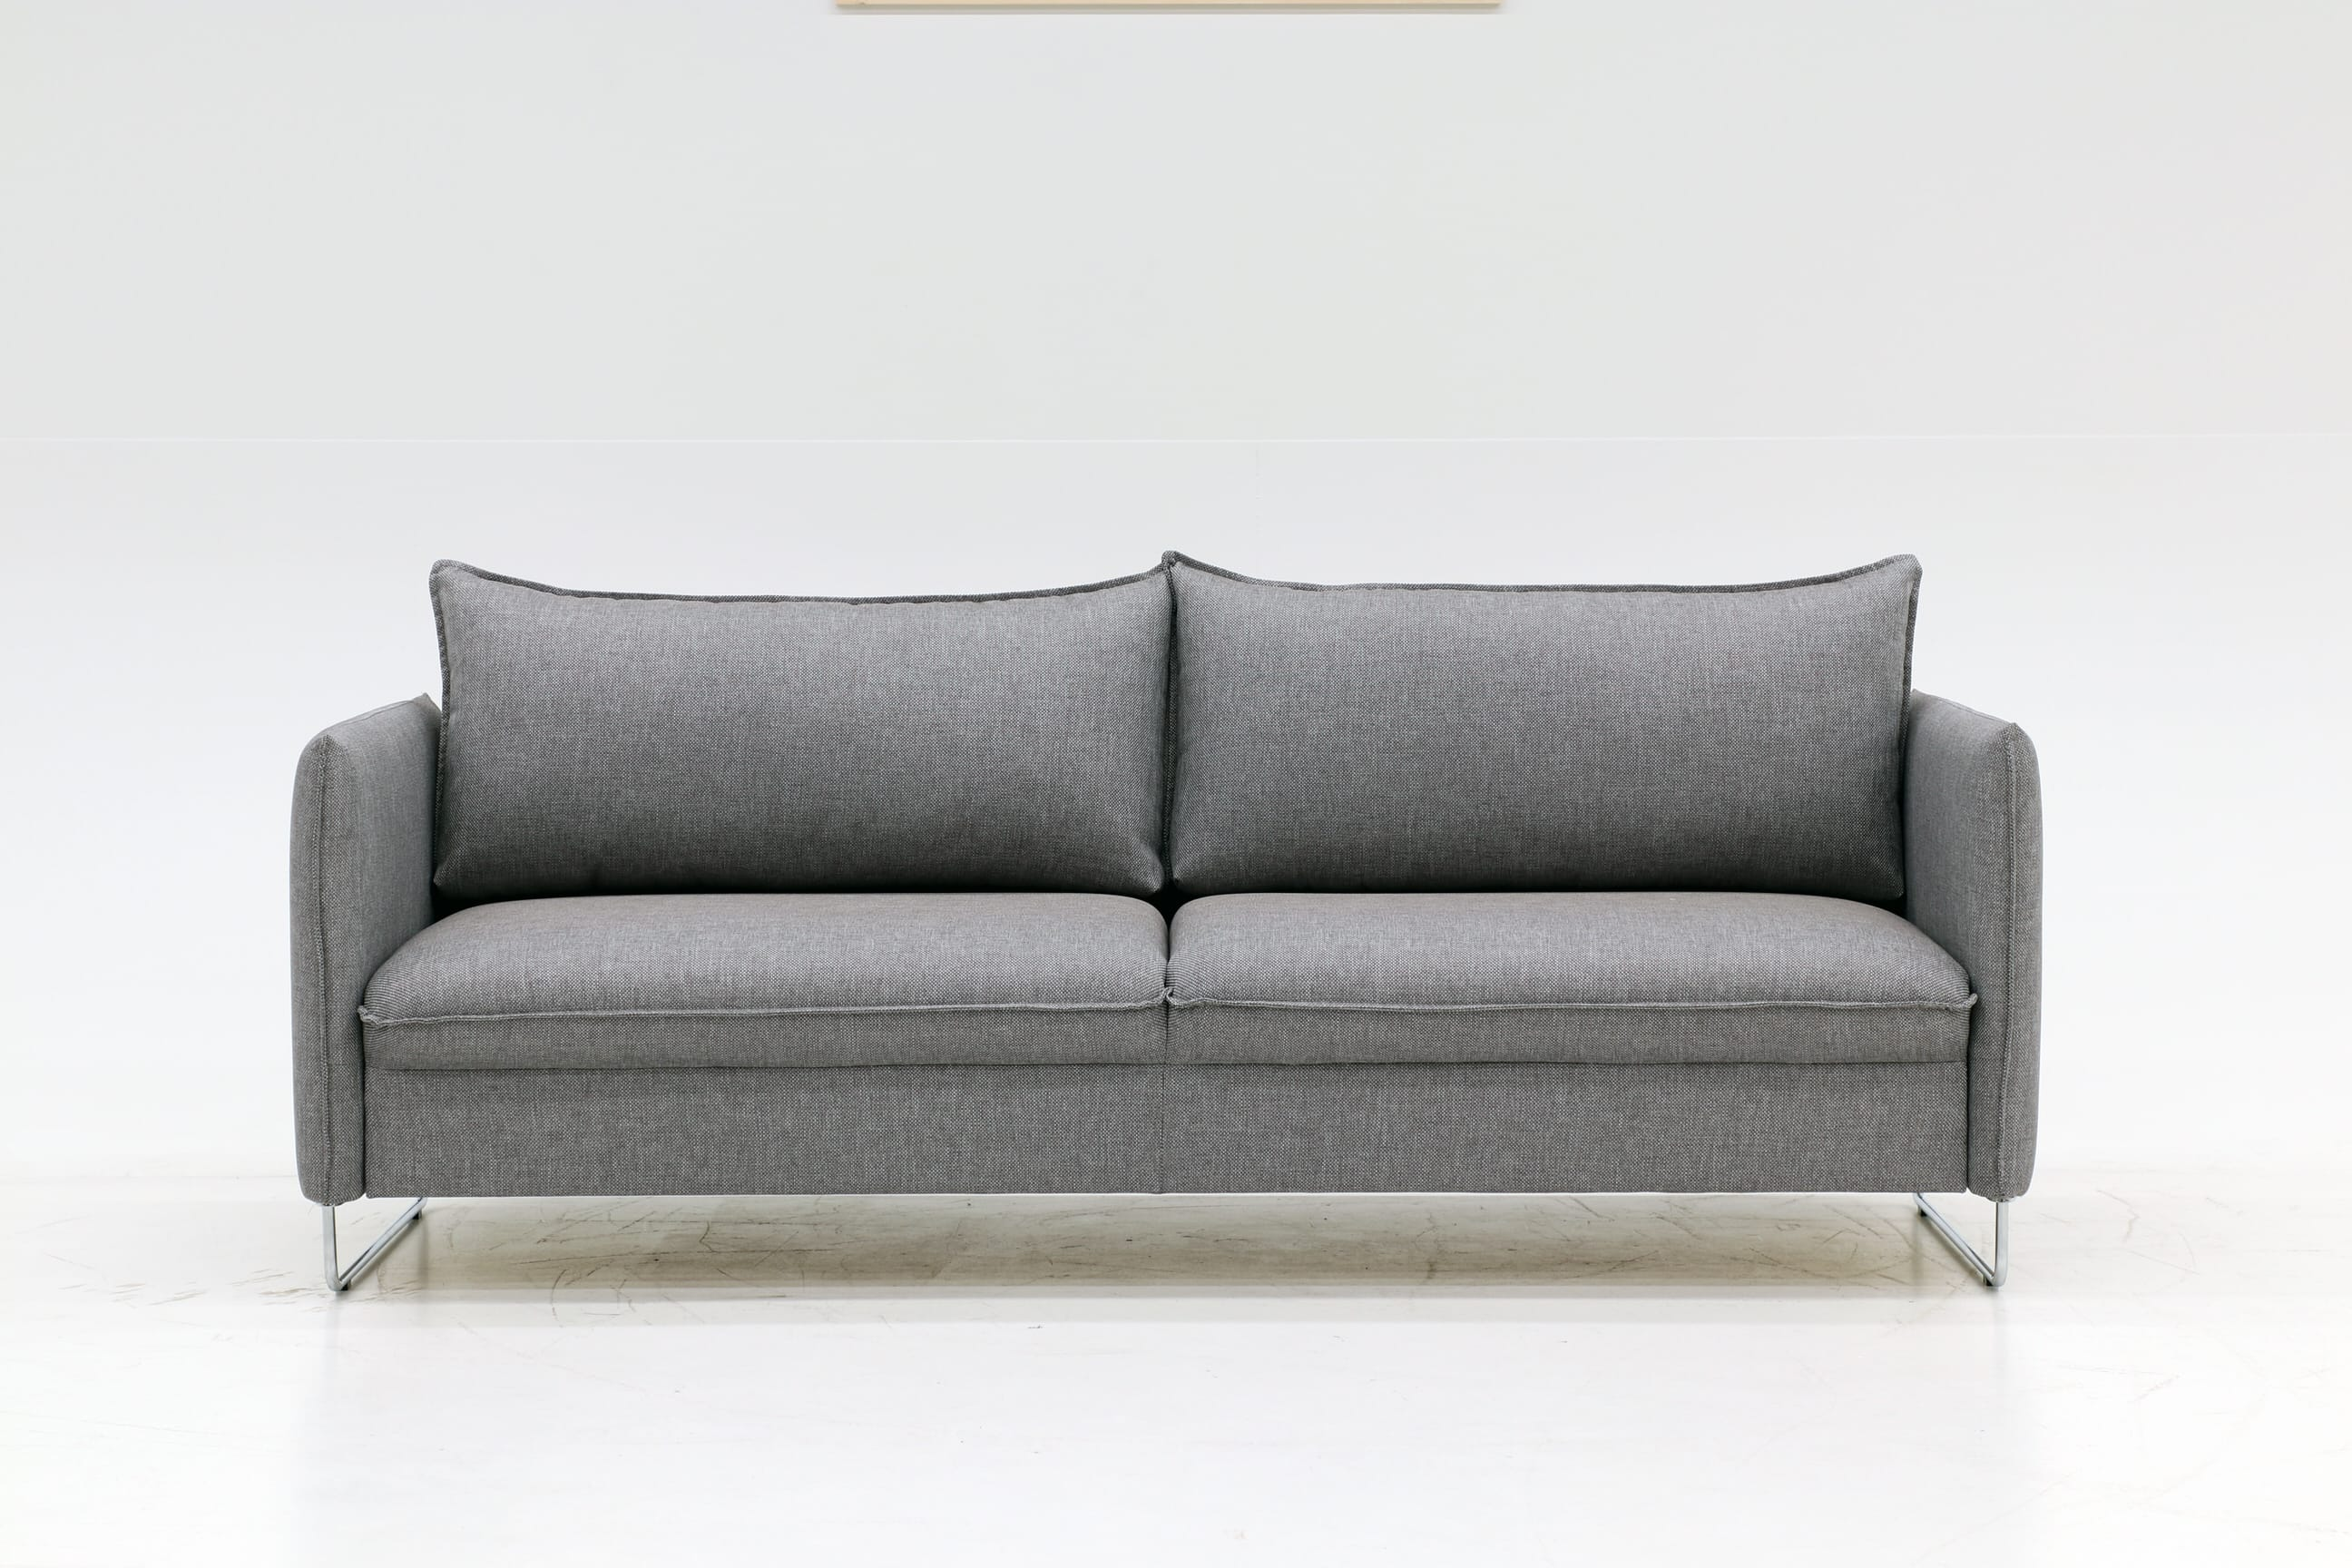 Incredible Flipper Sofa Sleeper Full Xl Size By Luonto Furniture Gmtry Best Dining Table And Chair Ideas Images Gmtryco